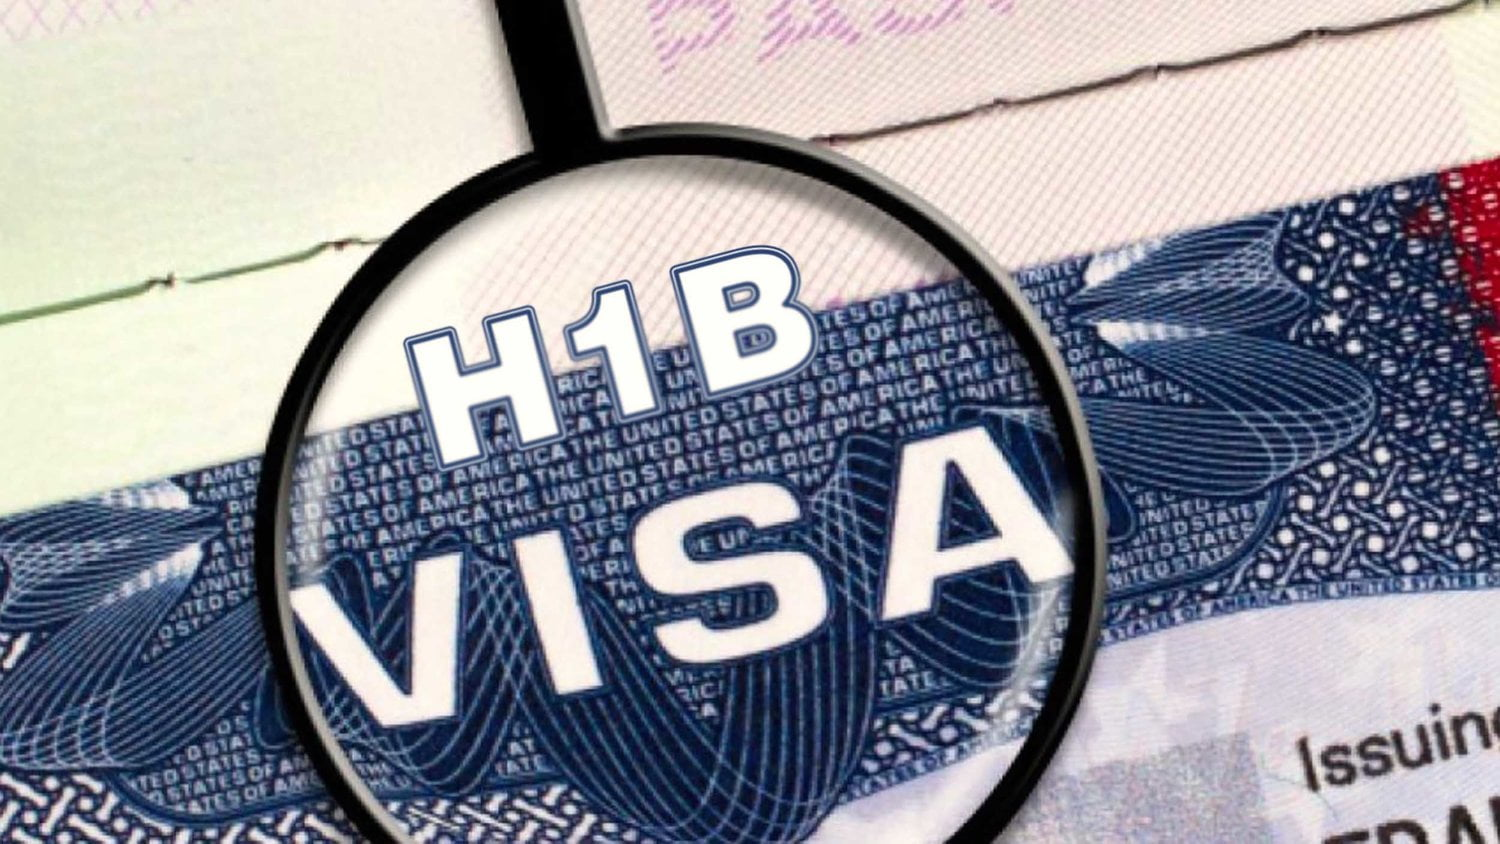 Owner Of Information Technology Companies Admits Visa Fraud And Tax Crimes